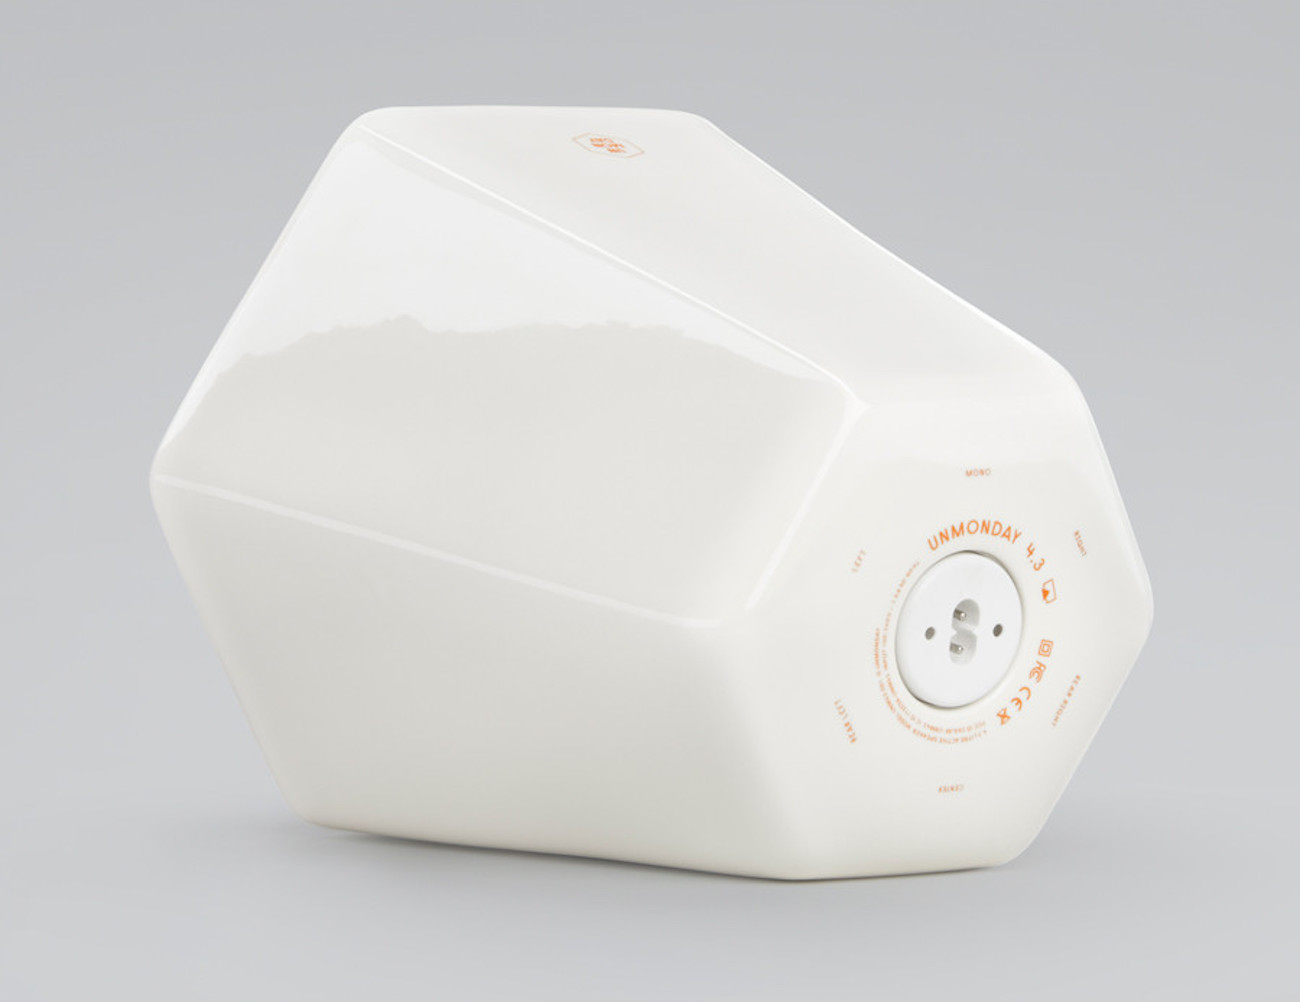 unmonday-model-4-3-wireless-speaker-03